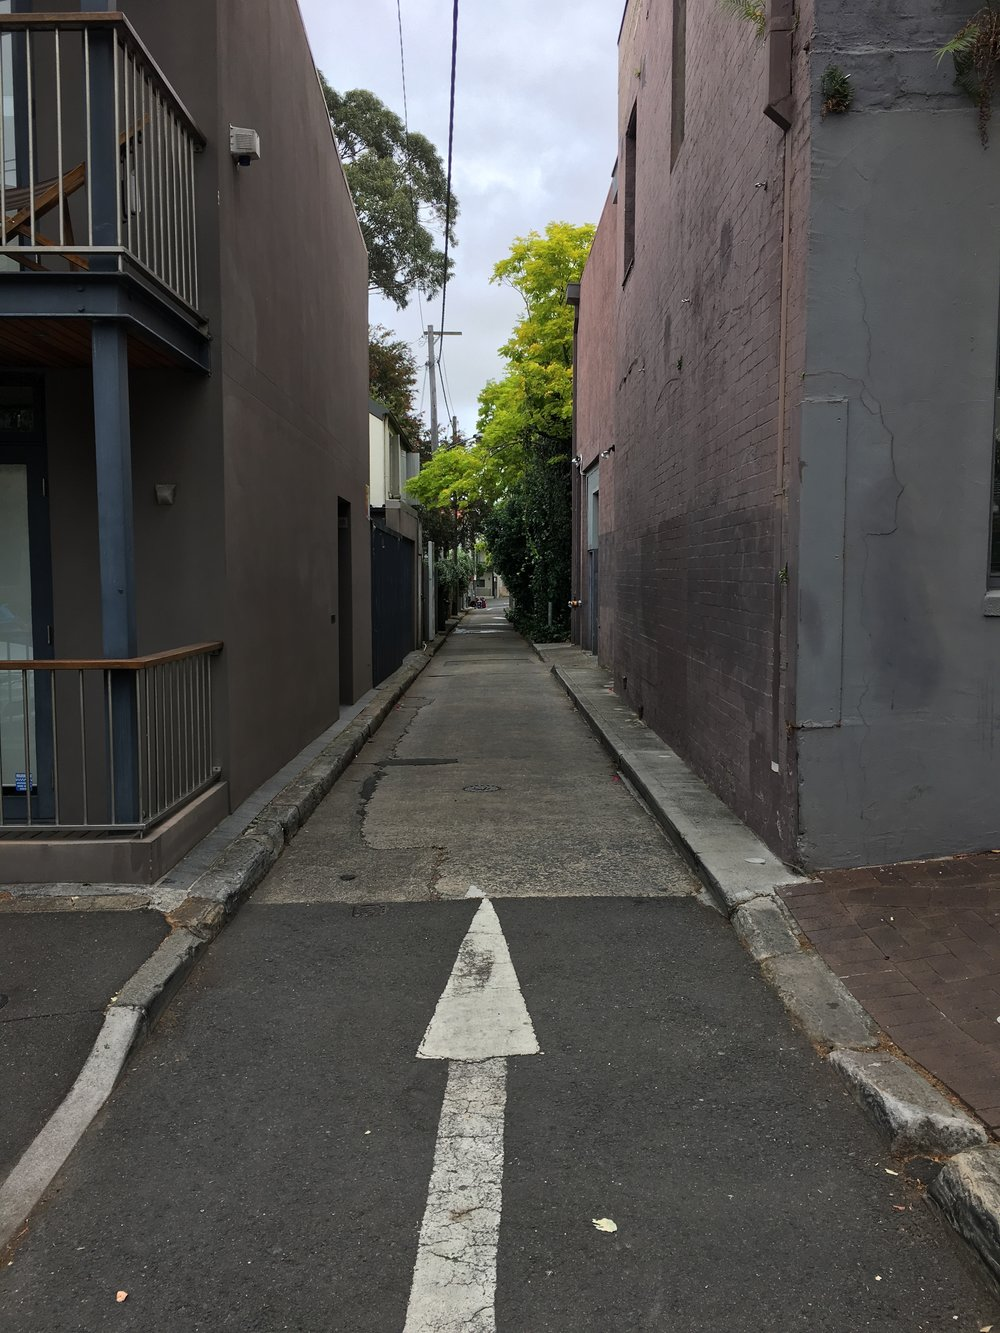 One of the lanes in Surry Hills between Crown and Bourke St